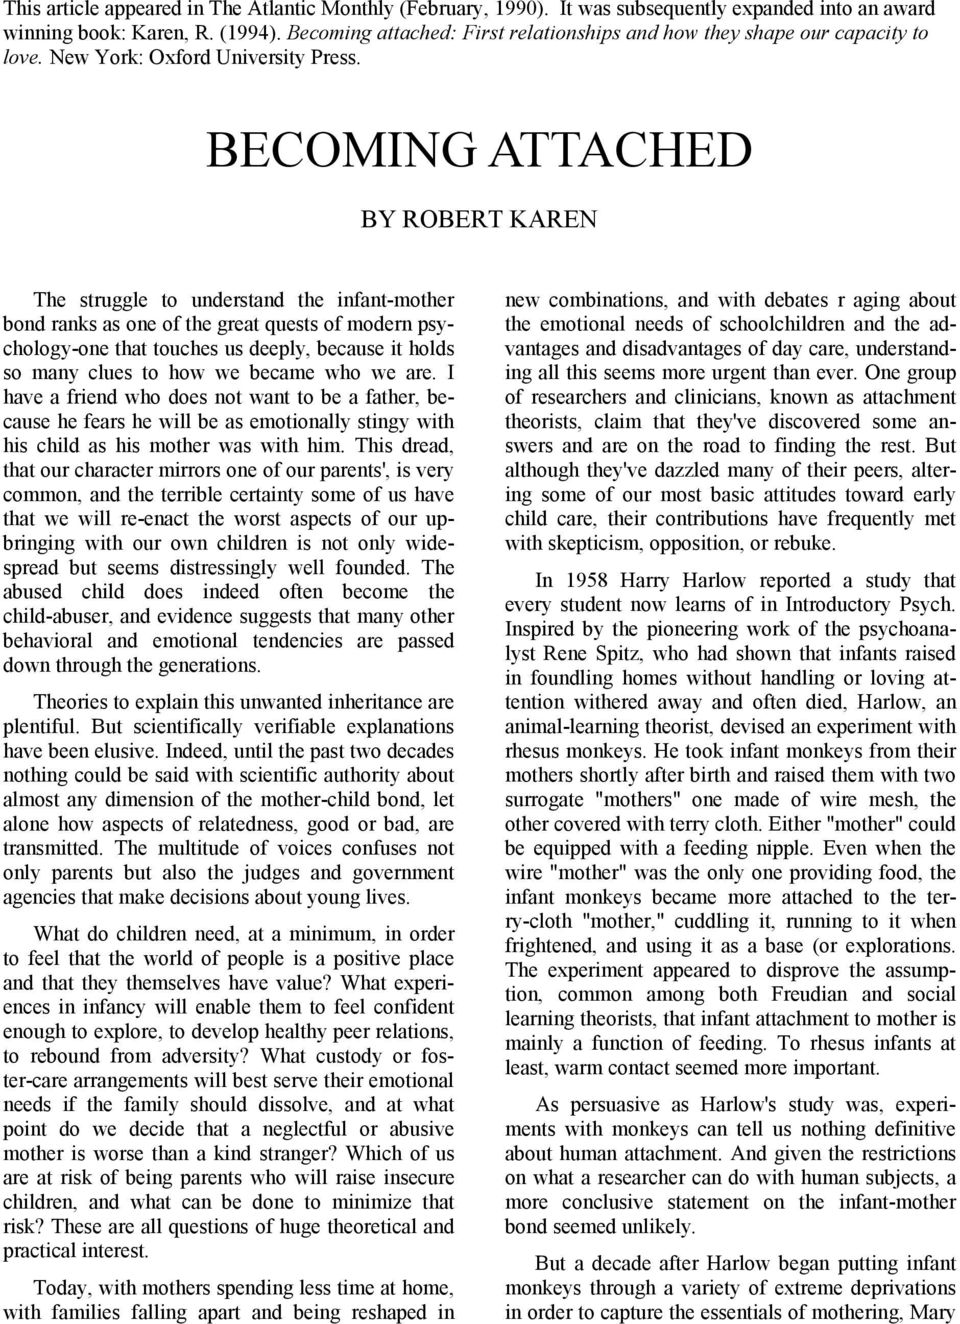 BECOMING ATTACHED BY ROBERT KAREN The struggle to understand the infant-mother bond ranks as one of the great quests of modern psychology-one that touches us deeply, because it holds so many clues to